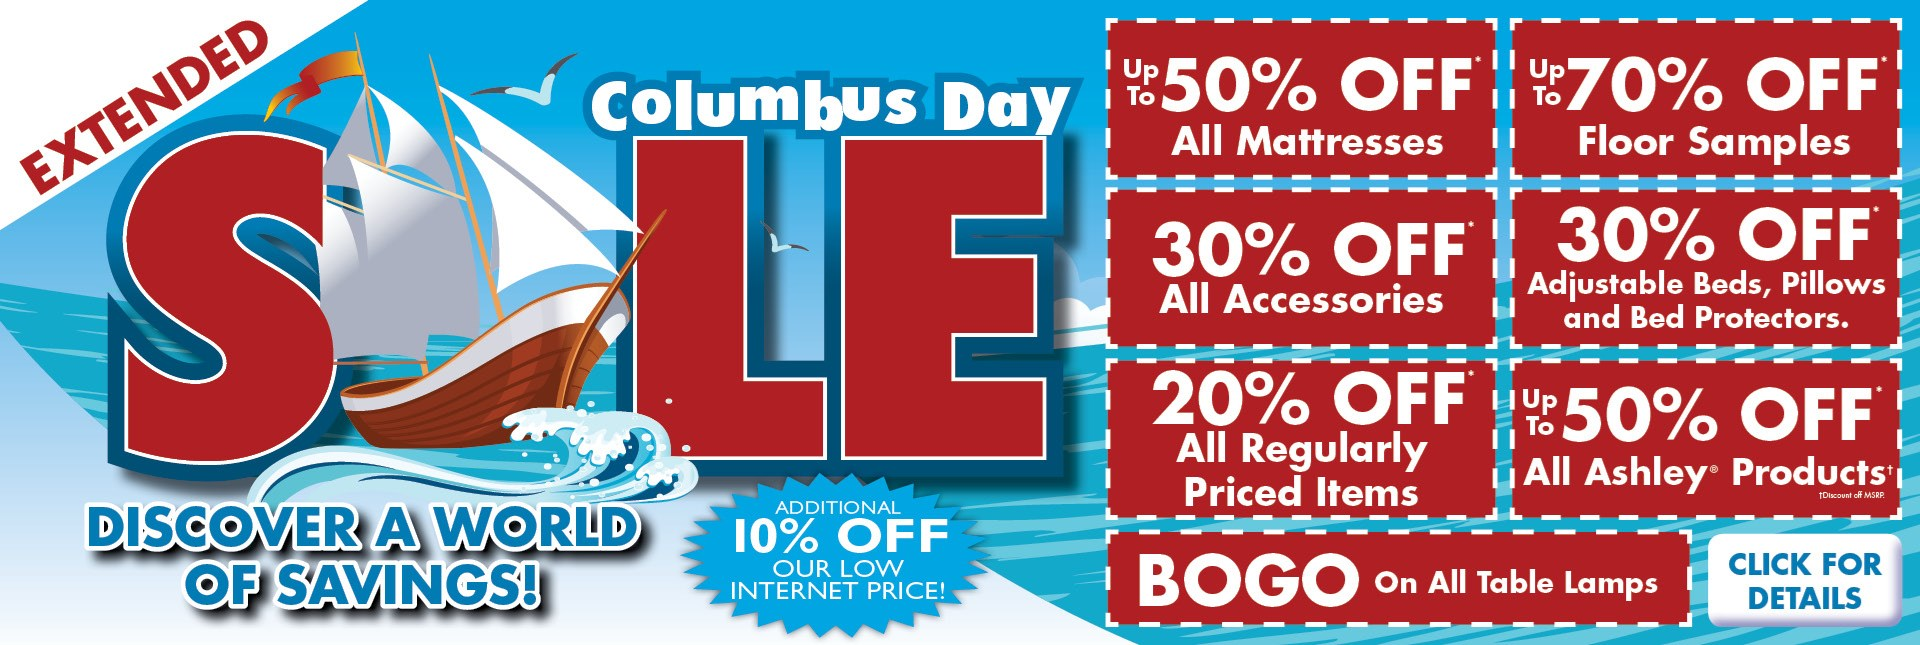 Columbus Day Extended Deals